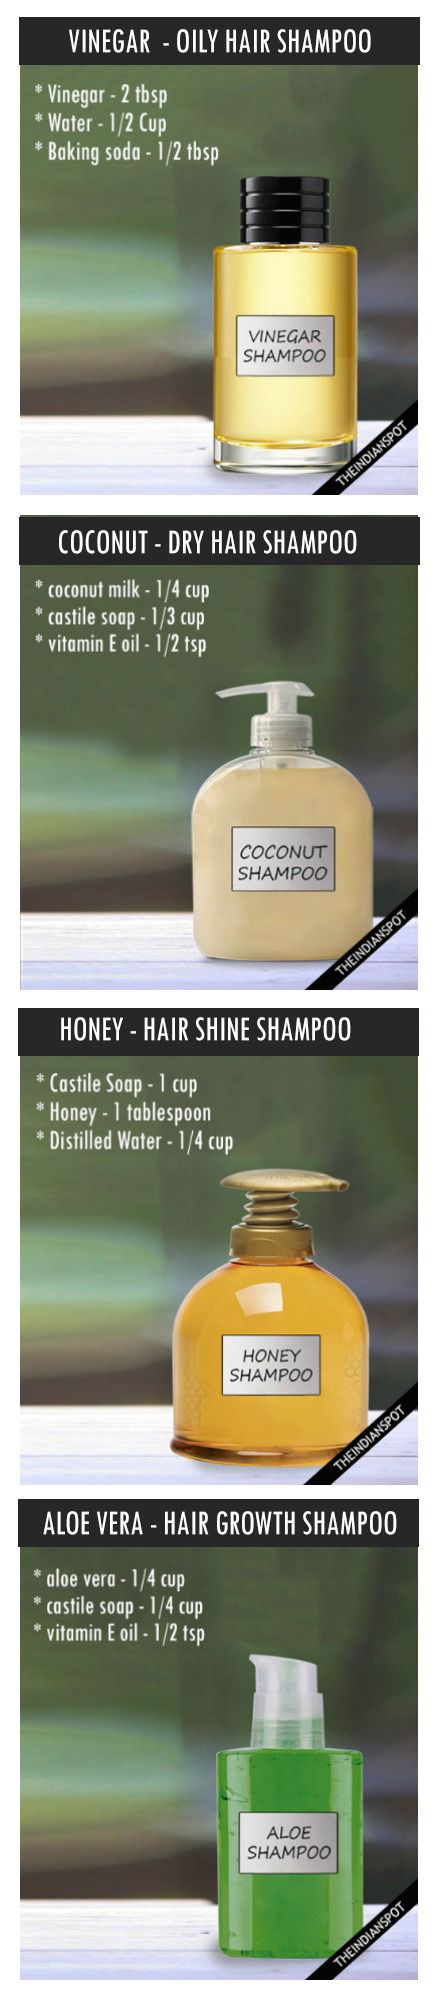 DIY ALL NATURAL SHAMPOO RECIPE FOR EVERY HAIR TYPE - Looking for Hair Extensions...